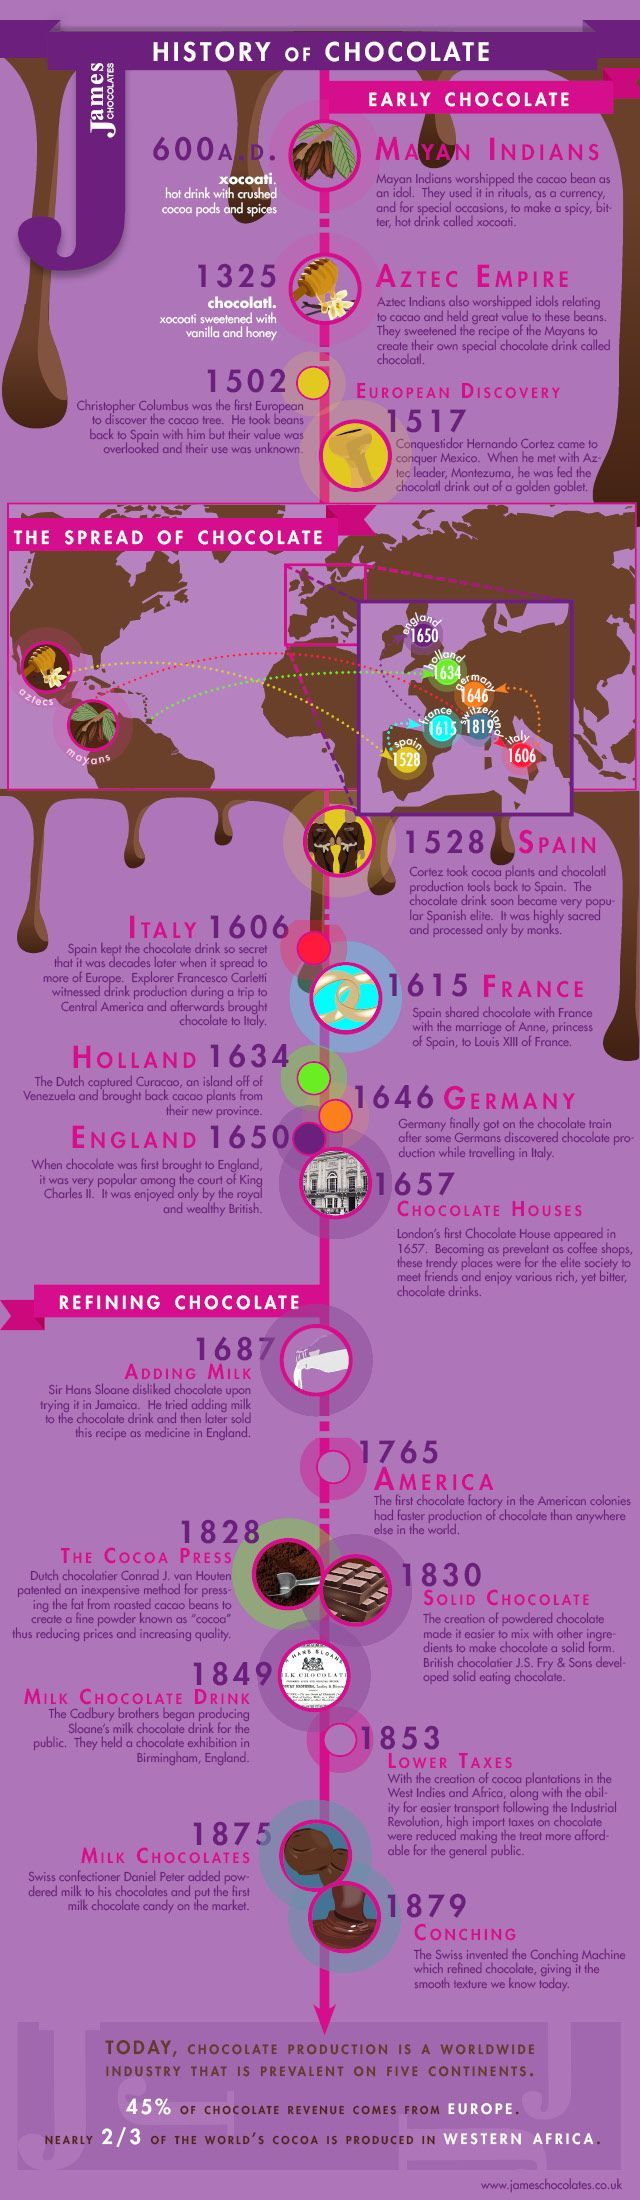 The History Of Chocolate Infographic History Of Chocolate Food History Chocolate